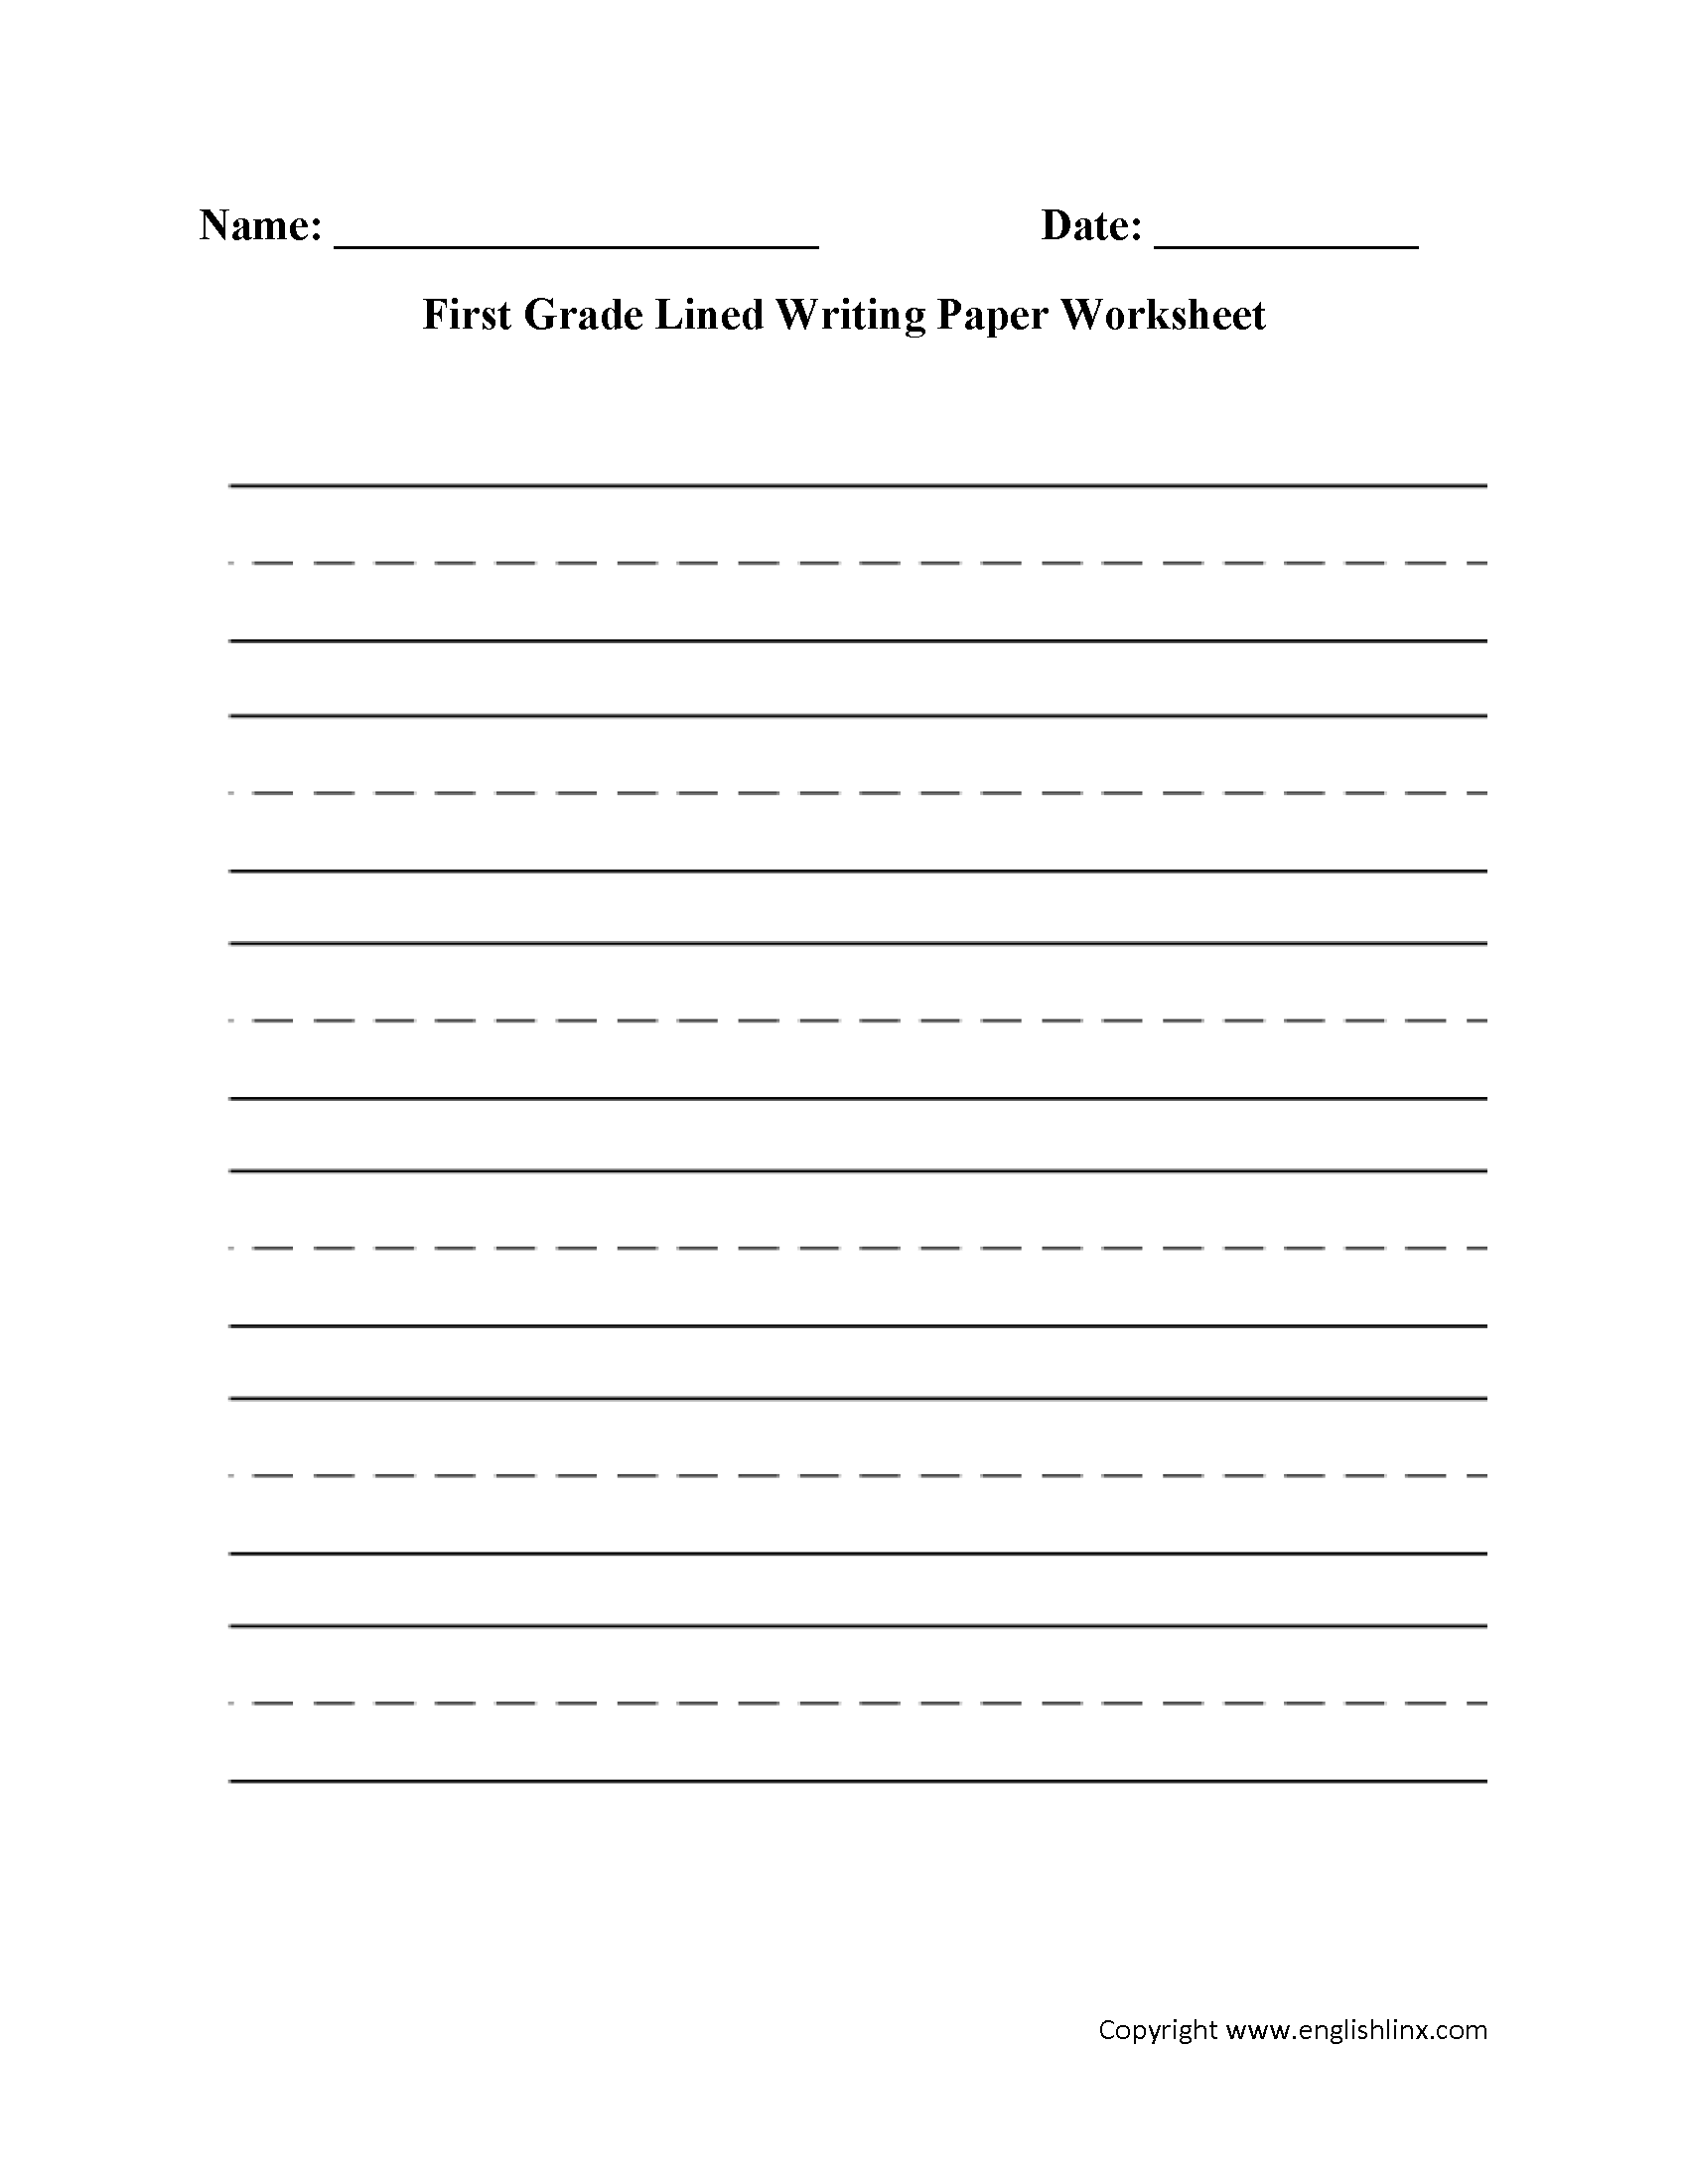 Worksheets Handwriting Worksheets Name writing worksheets lined paper worksheets